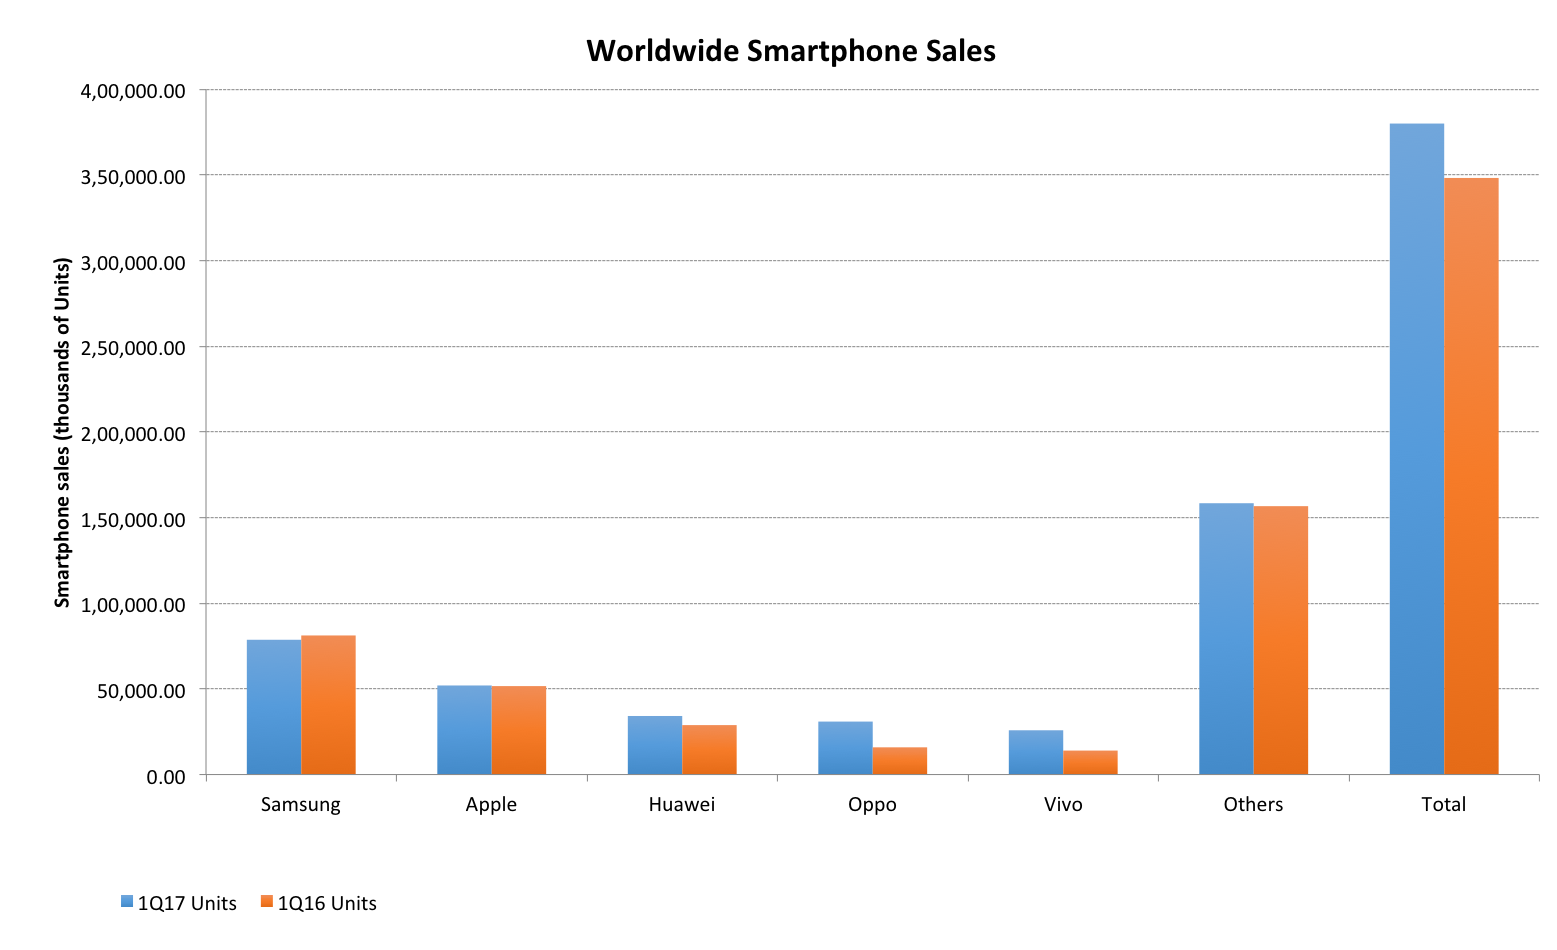 Worldwide Smartphone Sales Grow 9 1% With Samsung and Apple